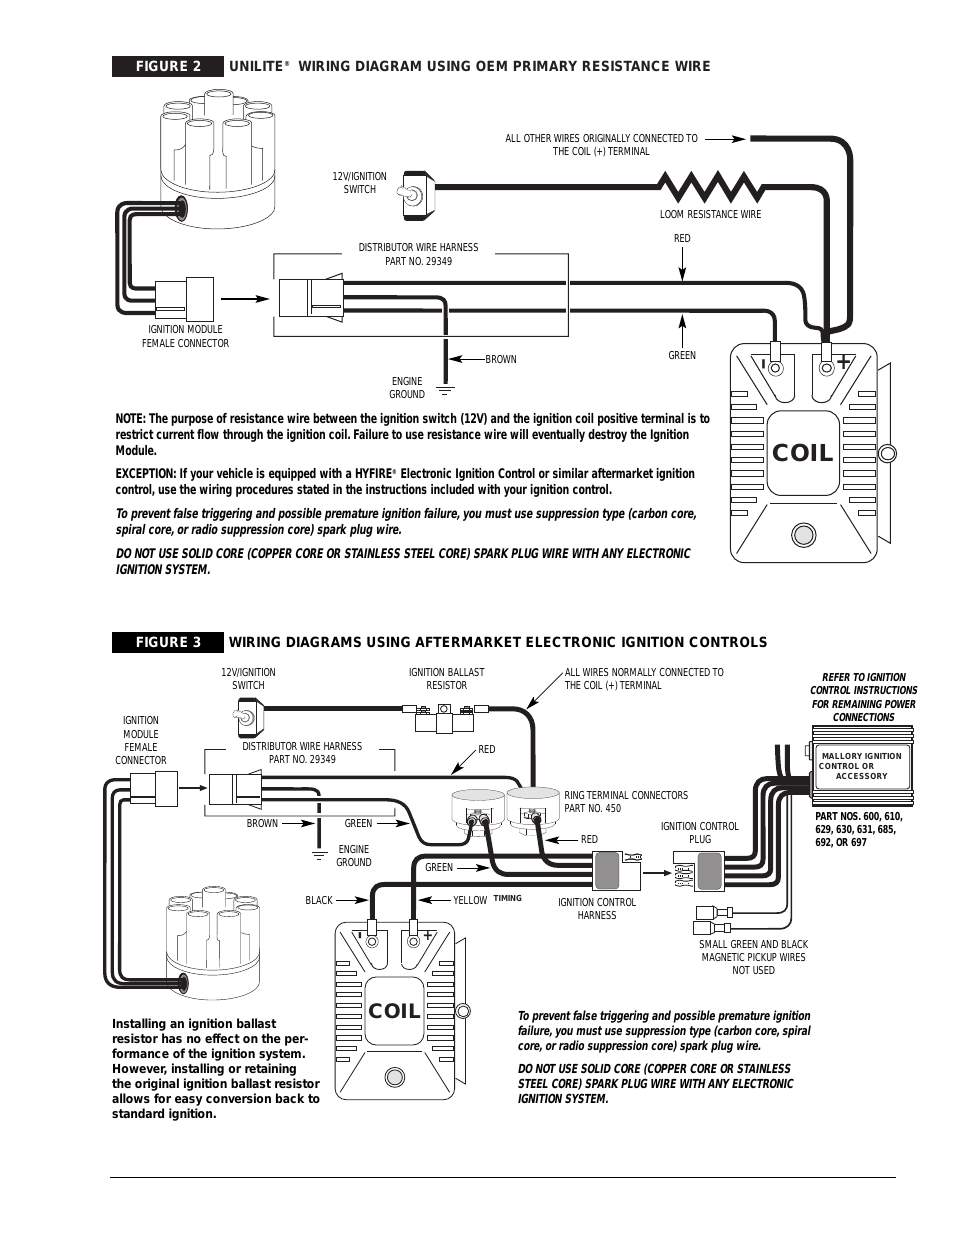 mallory ignition wiring diagram | free wiring diagram mallory ignition tach wiring diagram